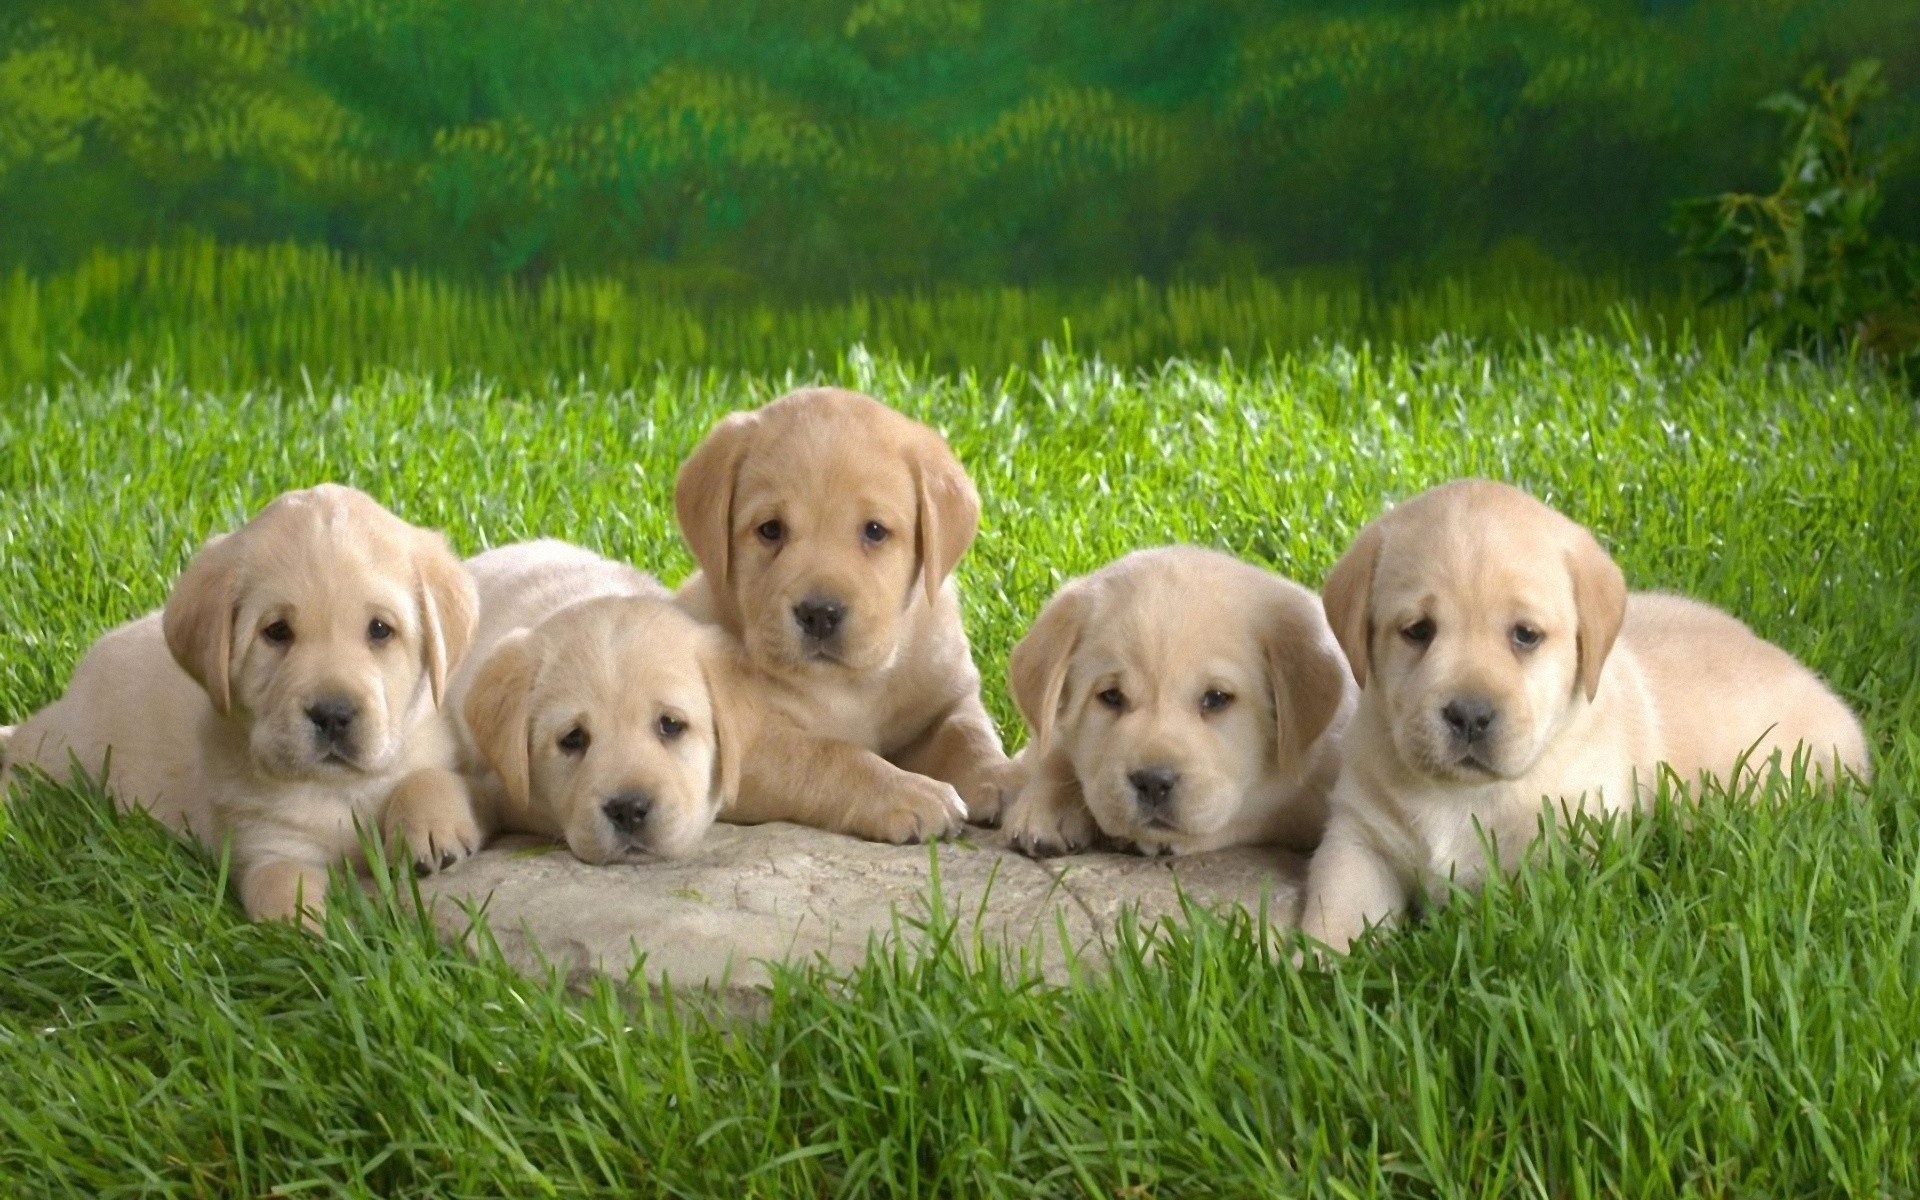 Cute puppy pictures download